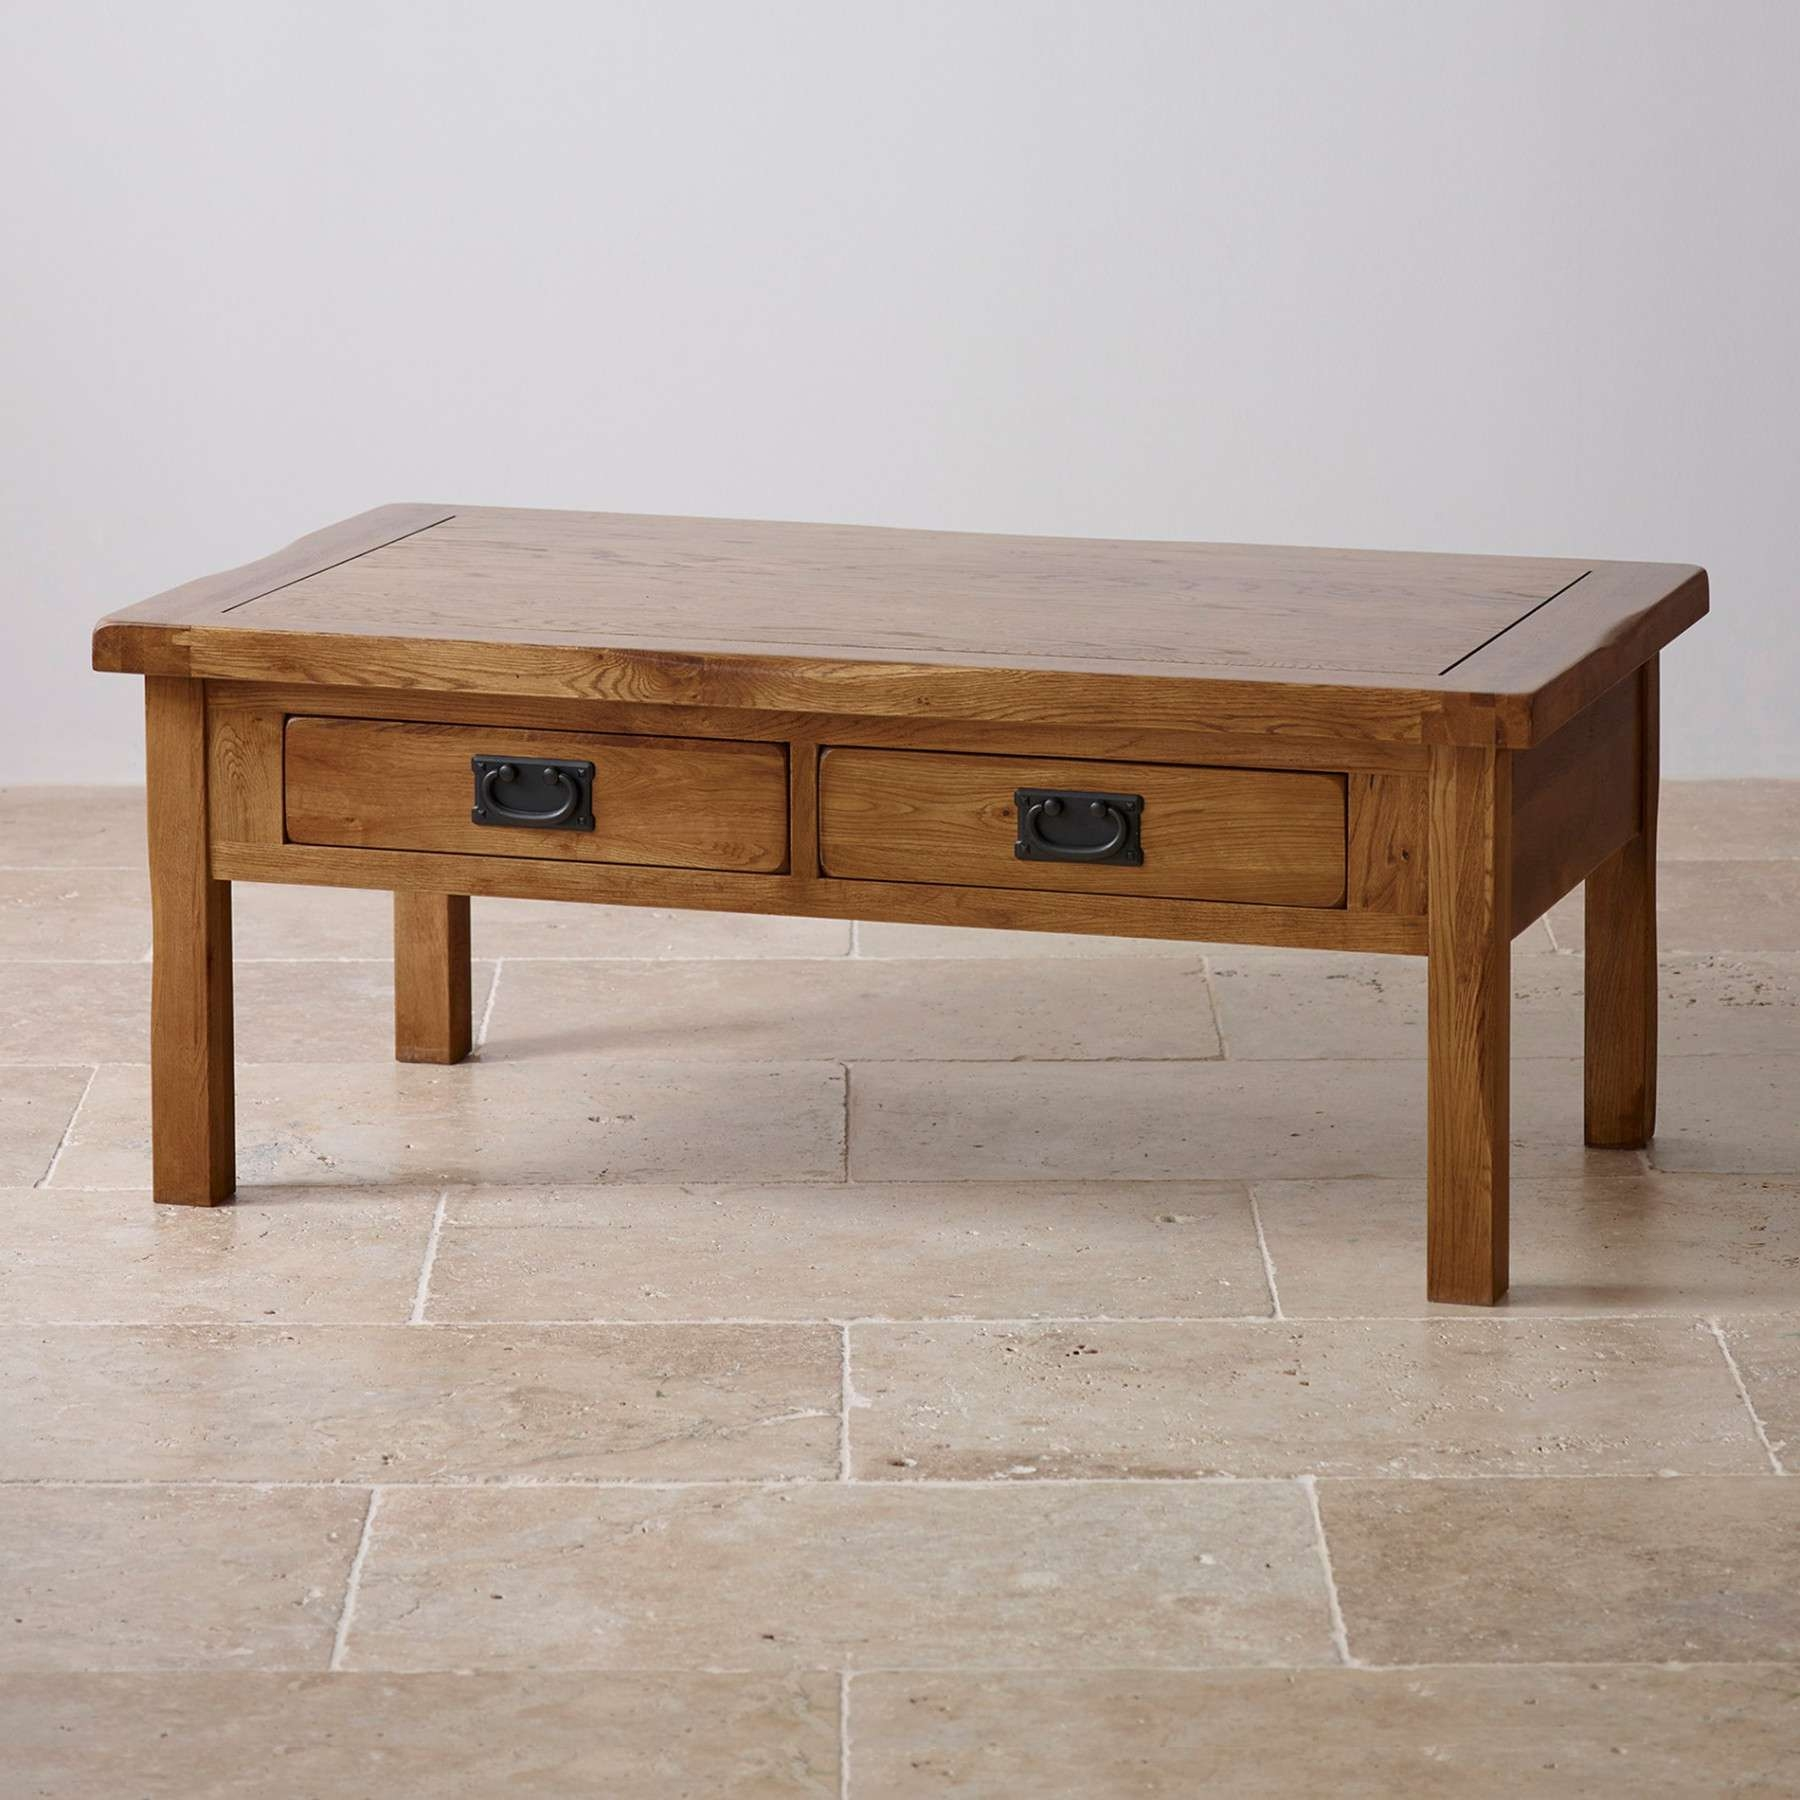 Oak Furniture Land Pertaining To Latest Oak Coffee Table Sets (View 12 of 20)